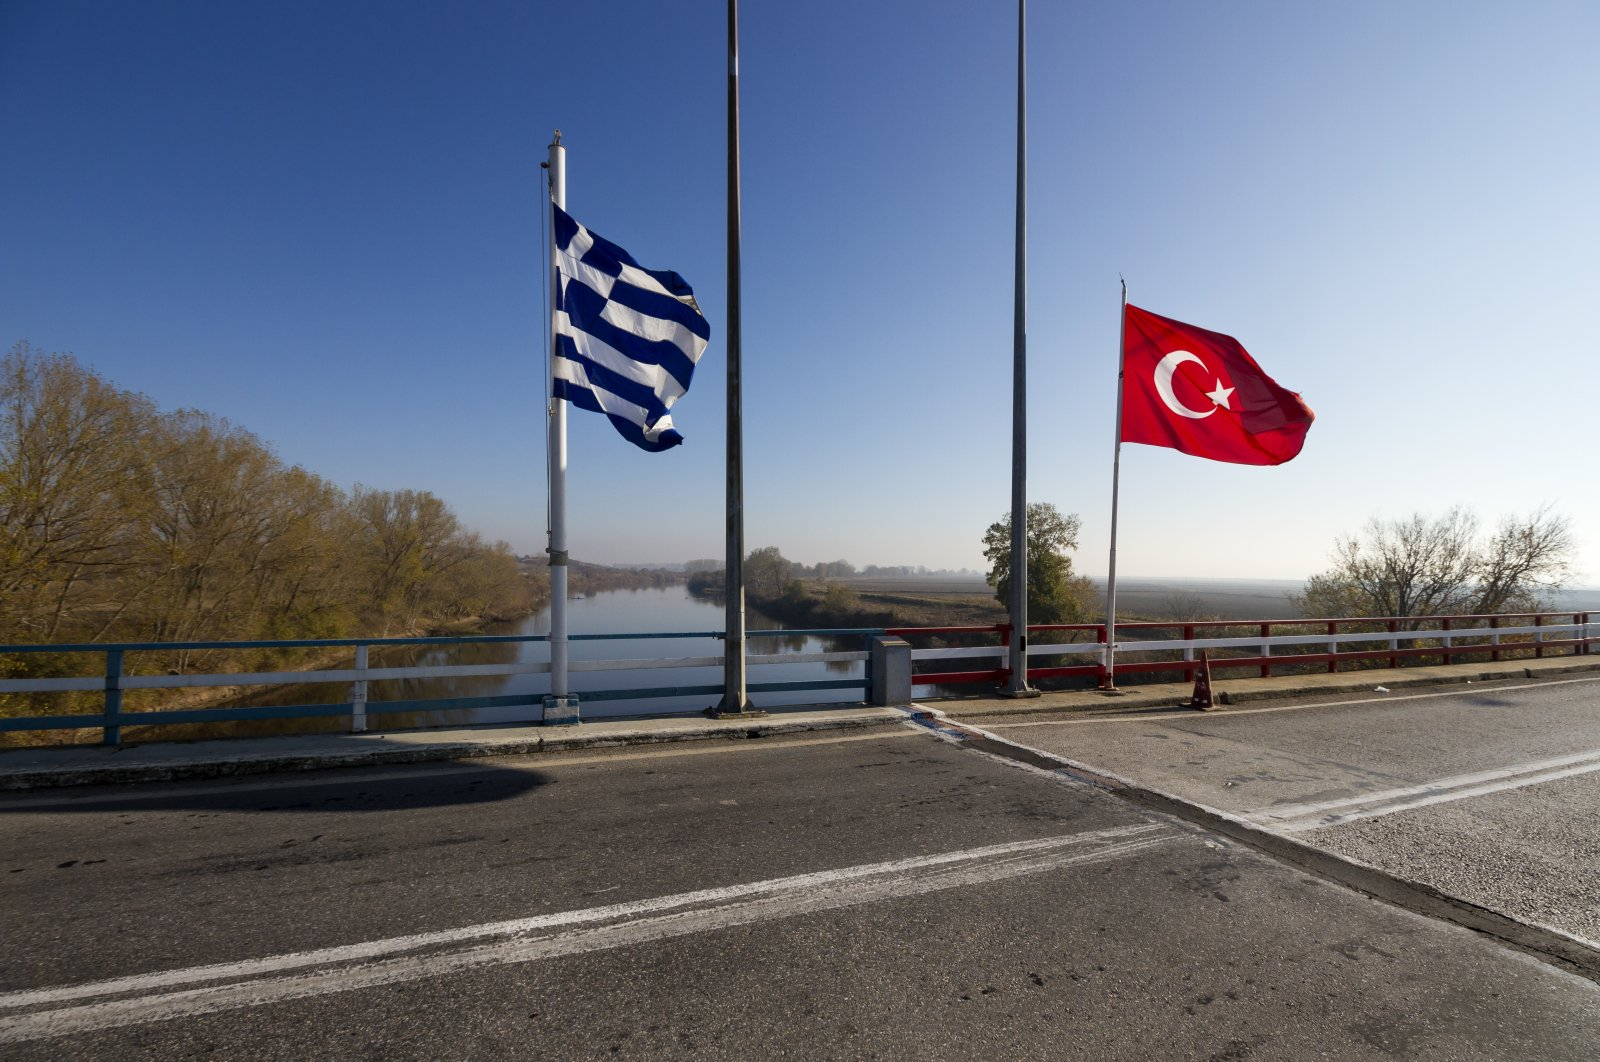 FETÖ members usually prefer the border with Greece to get into Europe, which became a haven for the group after their coup attempt in 2016 in Turkey. (Shutterstock Photo)